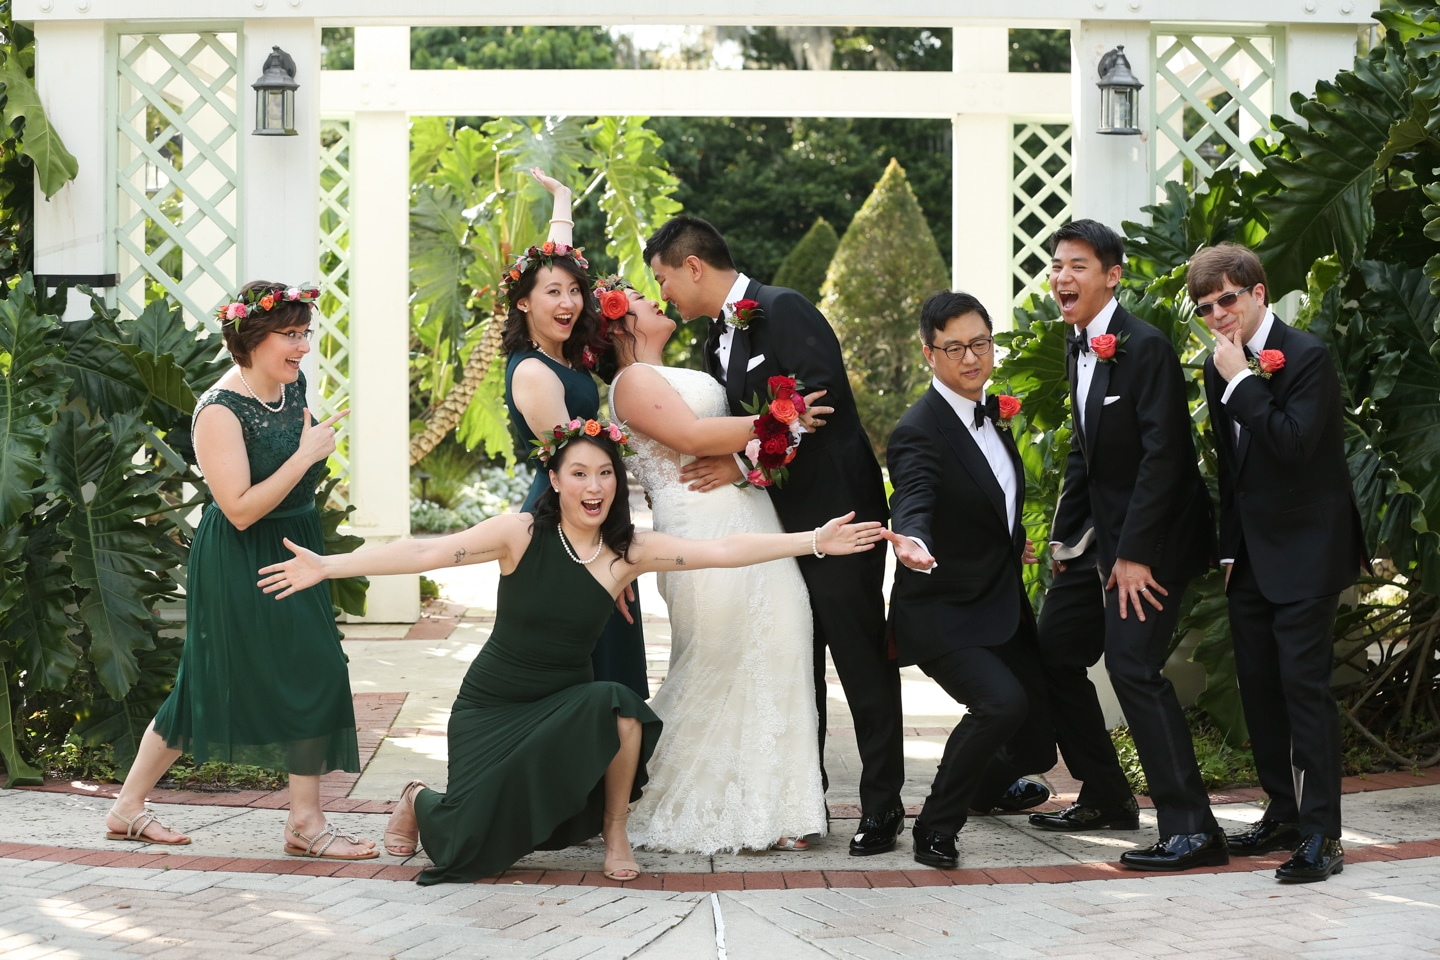 wedding party outside with fun posing